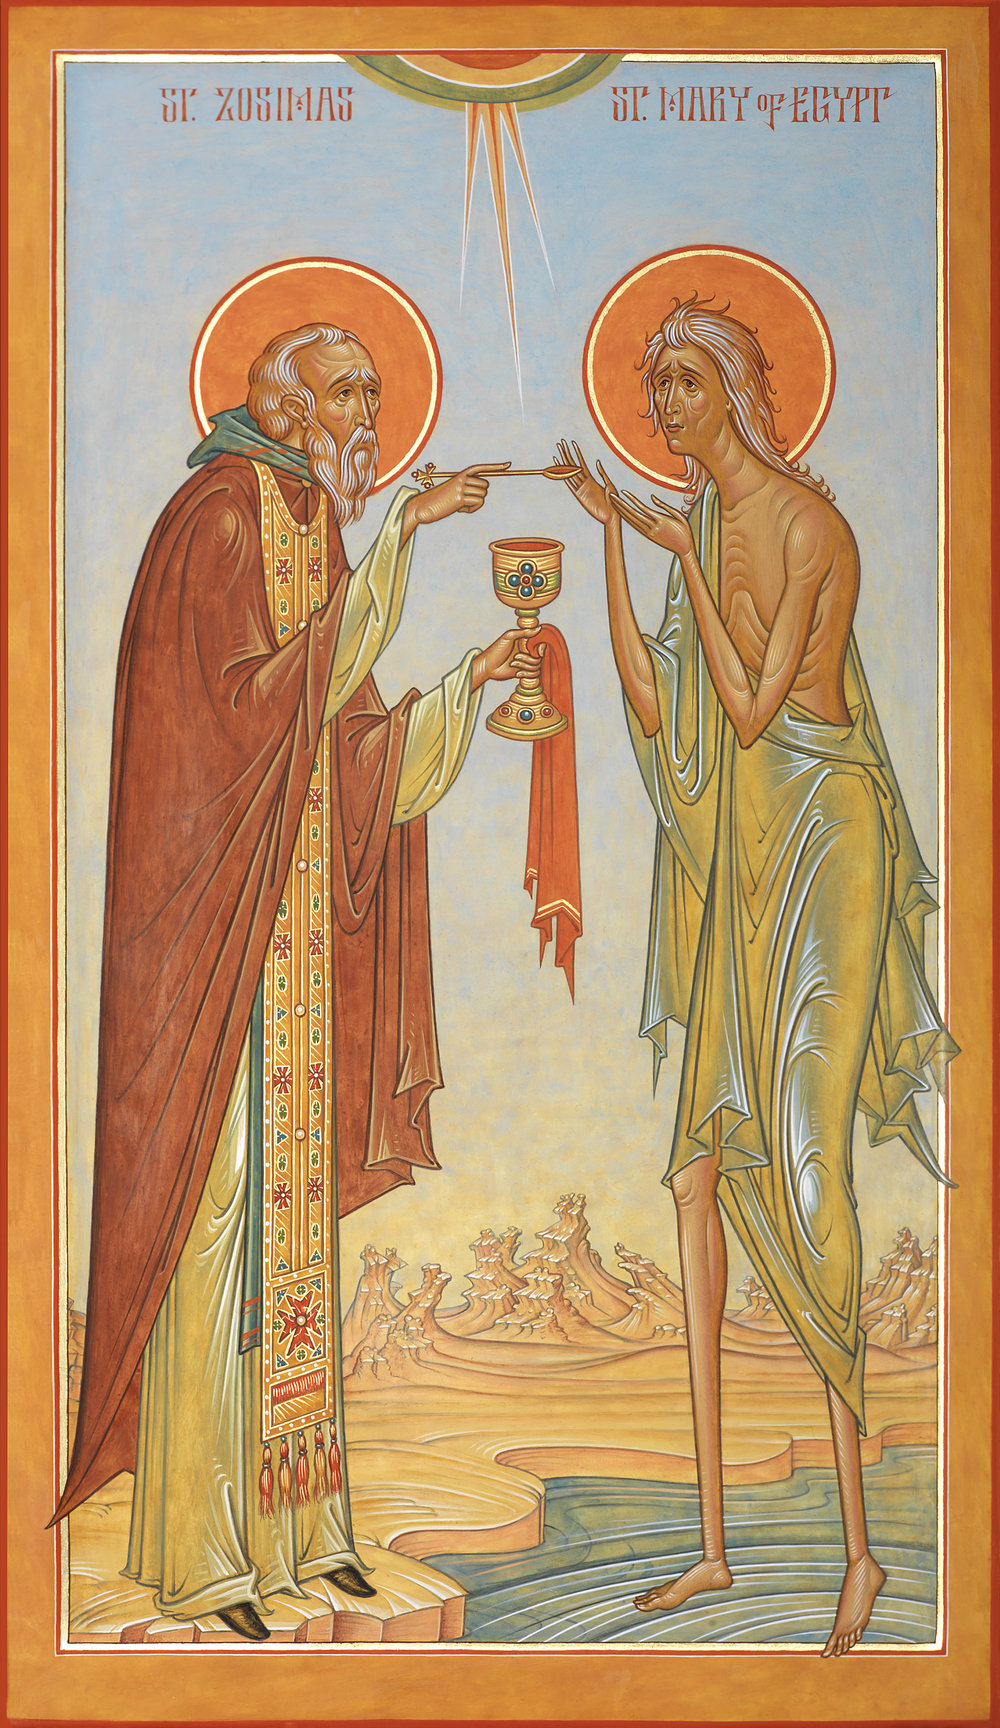 Icon by Fr. Silouan Justiniano  https://www.orthodoxartsjournal.org/a-new-icon-of-st-mary-of-egypt-and-st-zosimas-notes-on-form-symbolism/